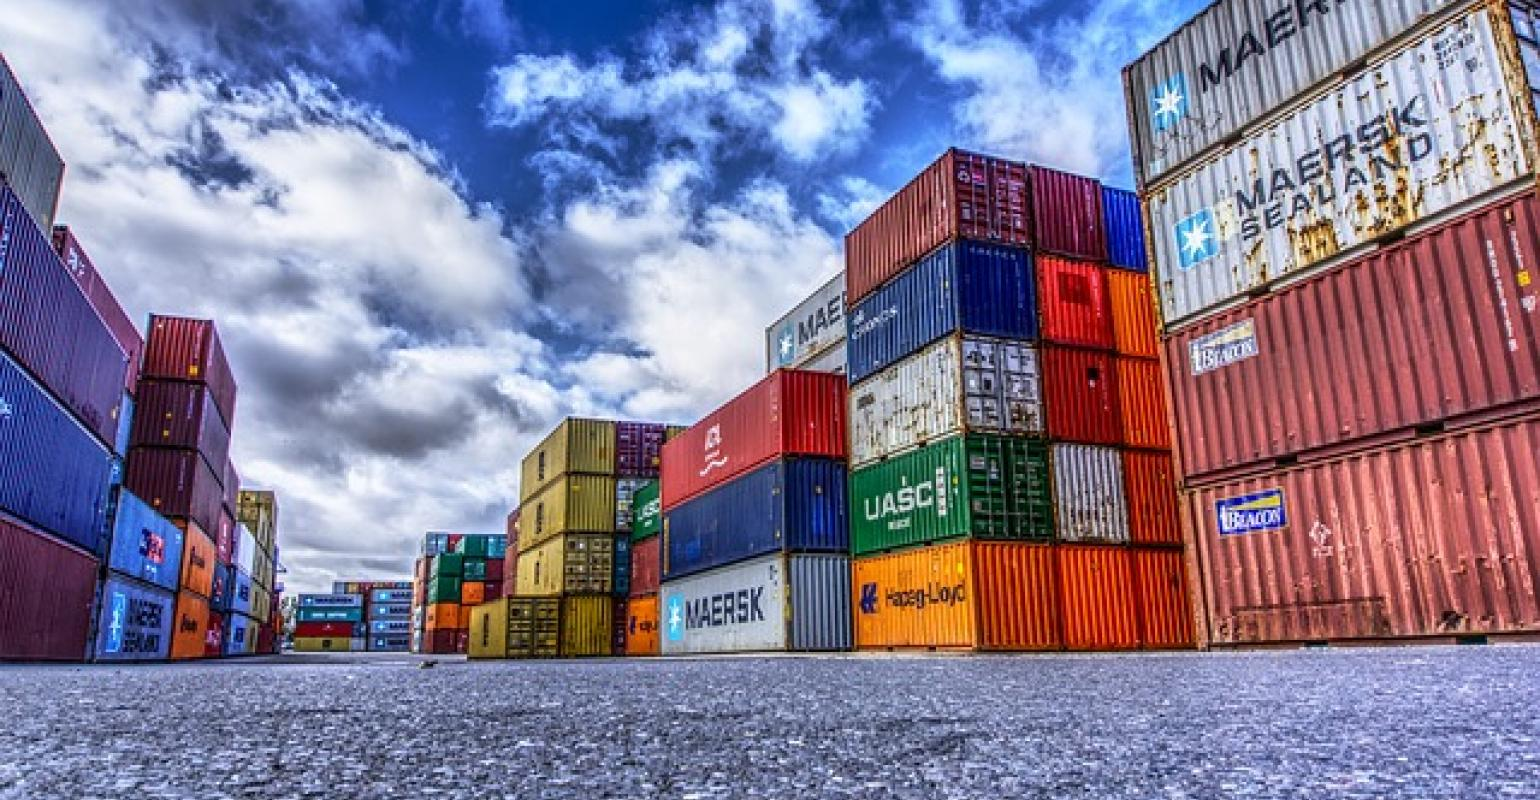 Deploying Docker Containers on Arm Hardware Just Got Easier